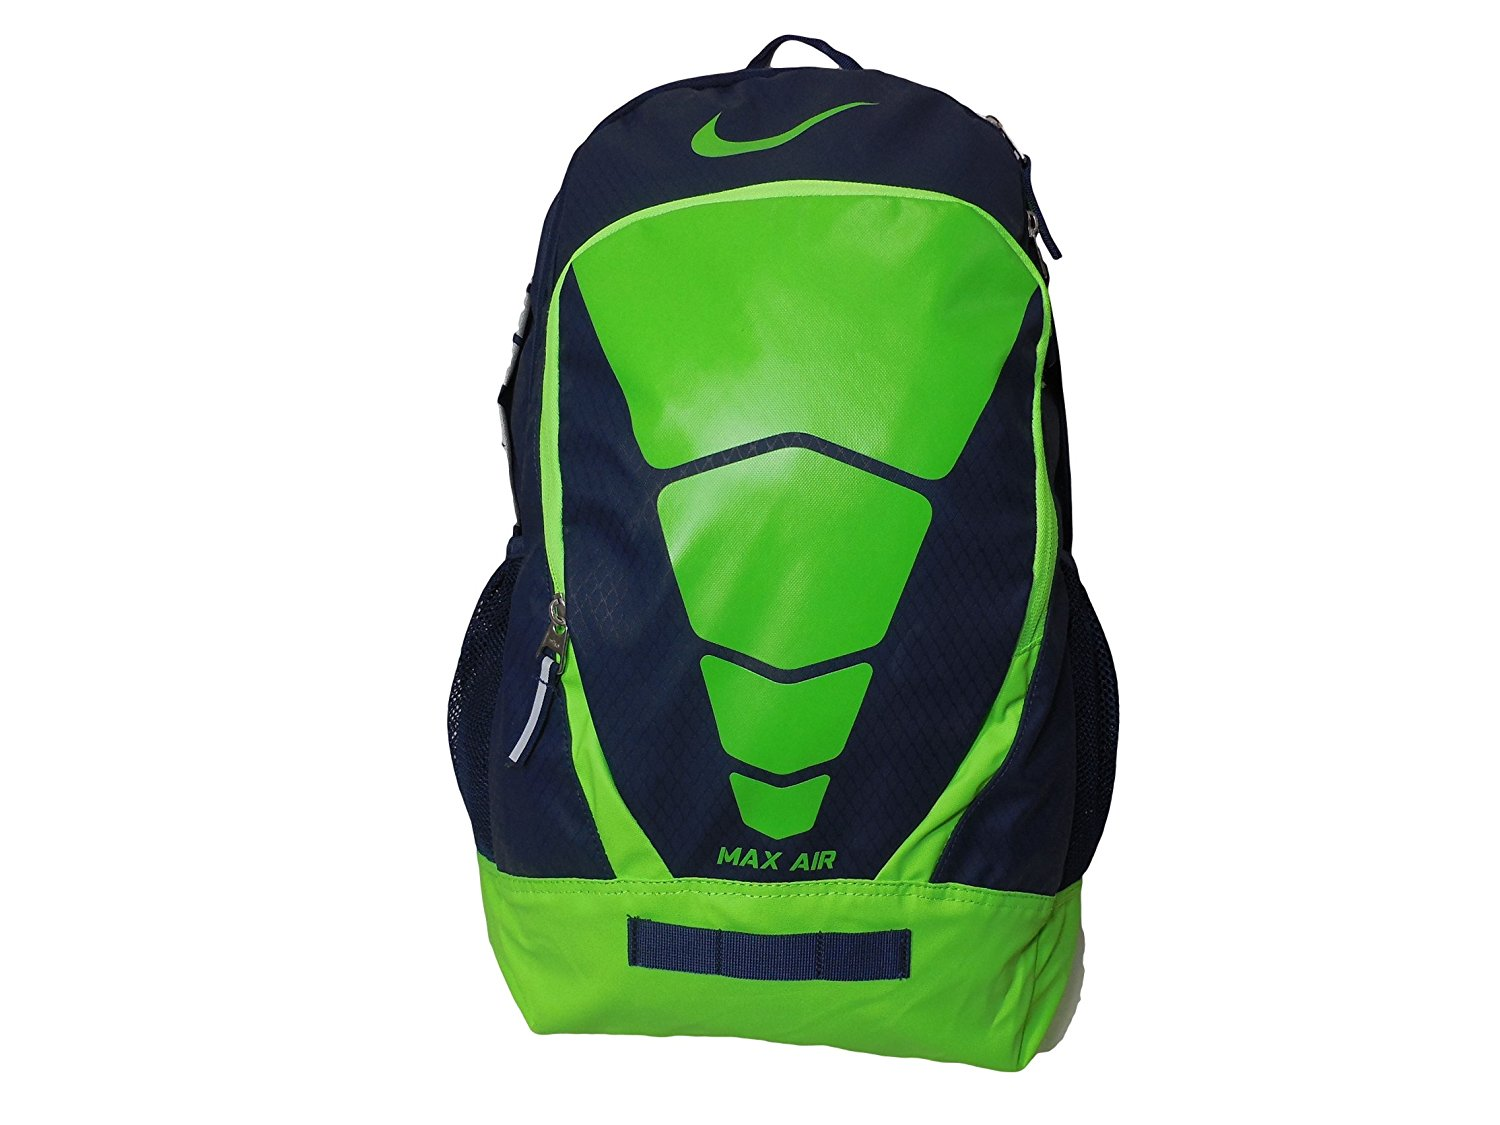 2a05d0190cd8 Get Quotations · Nike Max Air Vapor Backpack Midnight Navy Electric Green  BZ9511-433